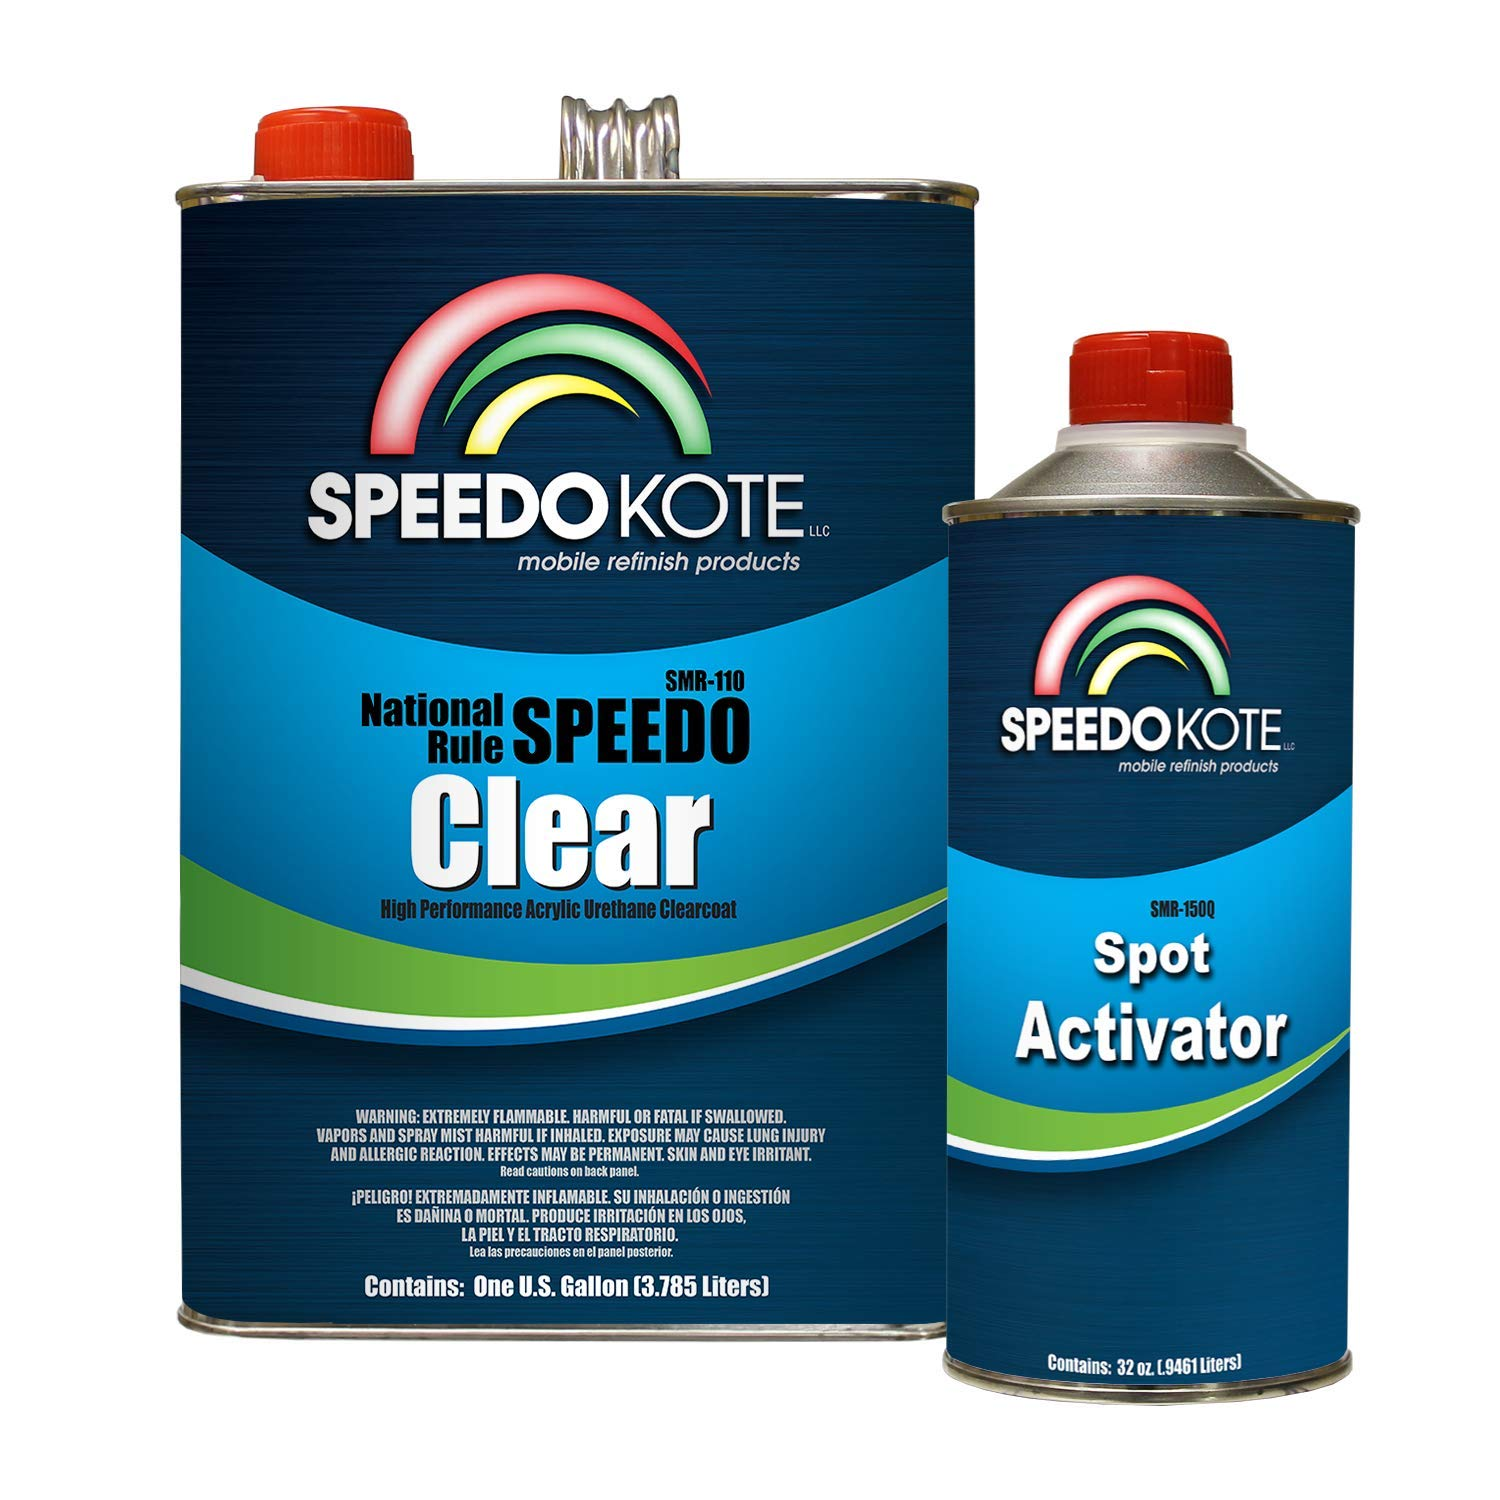 Speedokote SMR-110-M - Extremely Fast Dry Clear Coat, 20 minute buff, 4:1 mix Spot Clearcoat Gallon Kit with medium activator